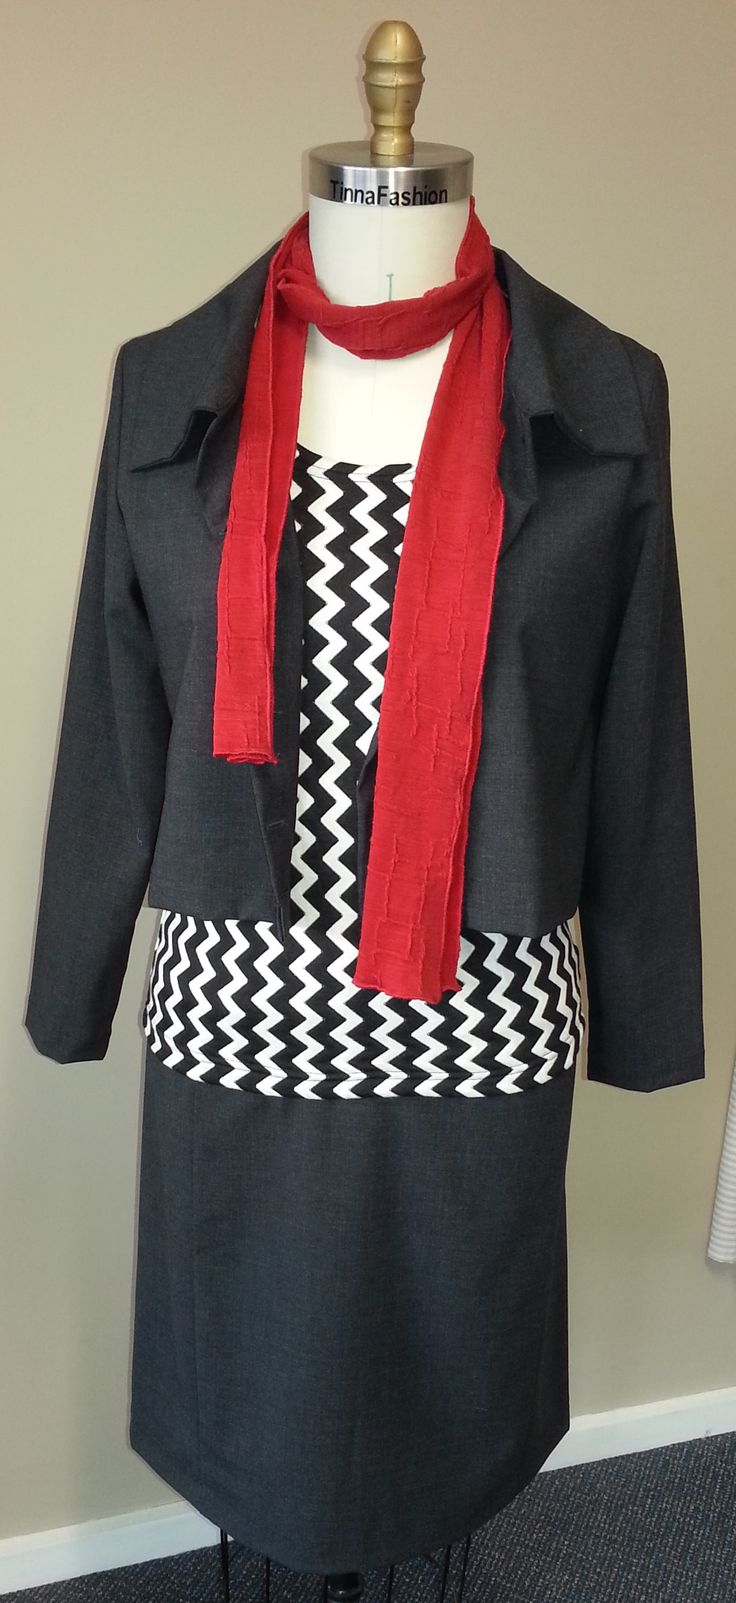 Classic Knit Top in Kitchy Jacquard fabric, a Short Jacket and matching Paneled Skirt in Charcoal Wool Blend, and a scarf in Red Warrior Knit